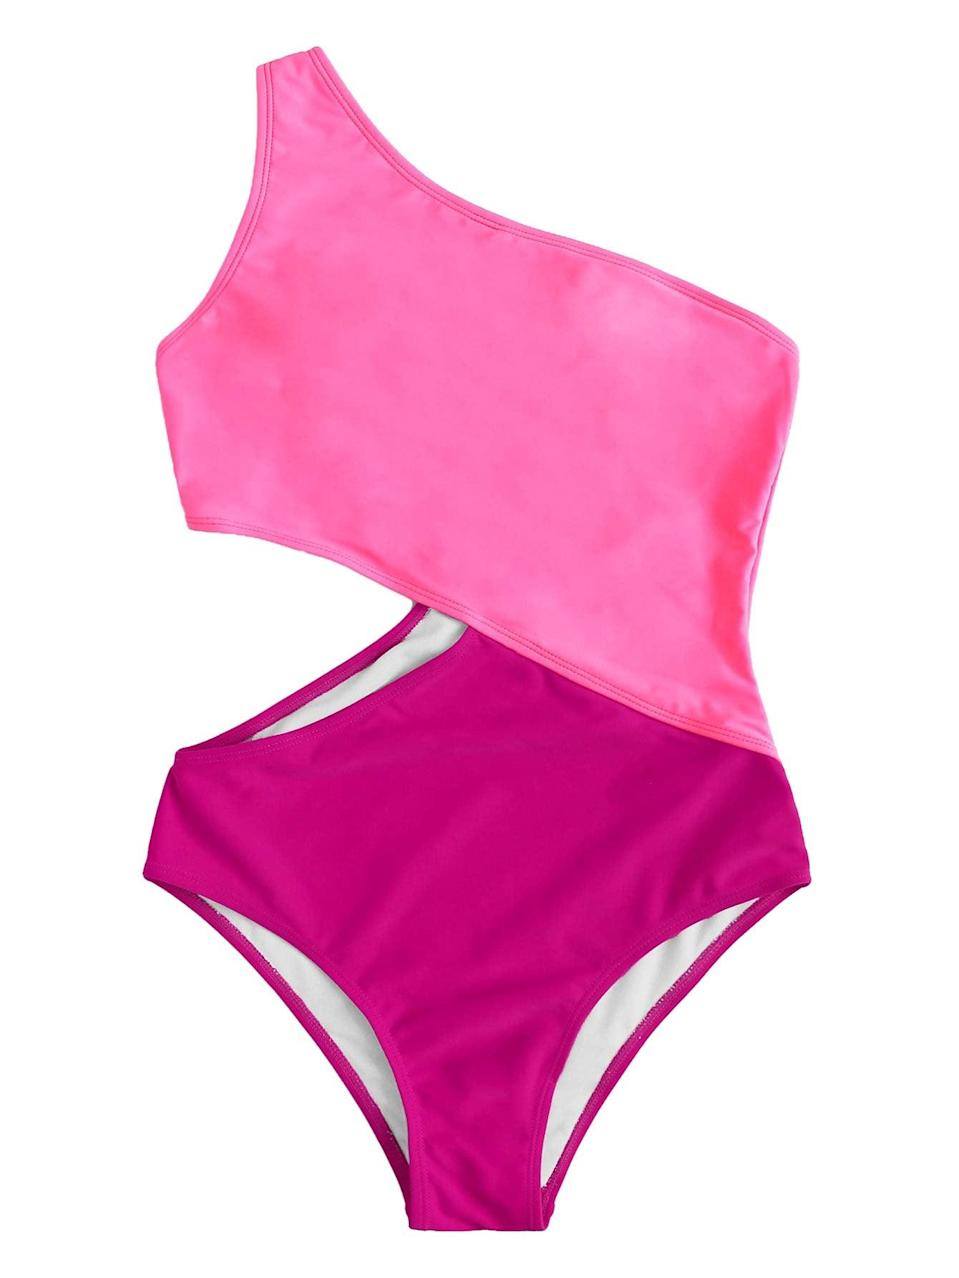 """<h2>SweatyRocks</h2><br>While it sounds like the name of a climbing gym, SweatyRocks is actually a longtime Amazon fashion brand with a host of top-rated swim and apparel styles to its name.<br><br><strong><em>SweatyRocks Cutout One-Shoulder Swimsuit<br></em></strong><br>Choose this Barbie pink cutout one-piece for beach blanket bingo dance vibes. The modern peekaboo cut is totally worth the potentially odd suntan lines. Our advice is to be militant about applying sunscreen and take a chance.<br><br><strong>SweatyRocks</strong> One Shoulder Cutout One Piece, $, available at <a href=""""https://amzn.to/2SAUQNC"""" rel=""""nofollow noopener"""" target=""""_blank"""" data-ylk=""""slk:Amazon"""" class=""""link rapid-noclick-resp"""">Amazon</a>"""